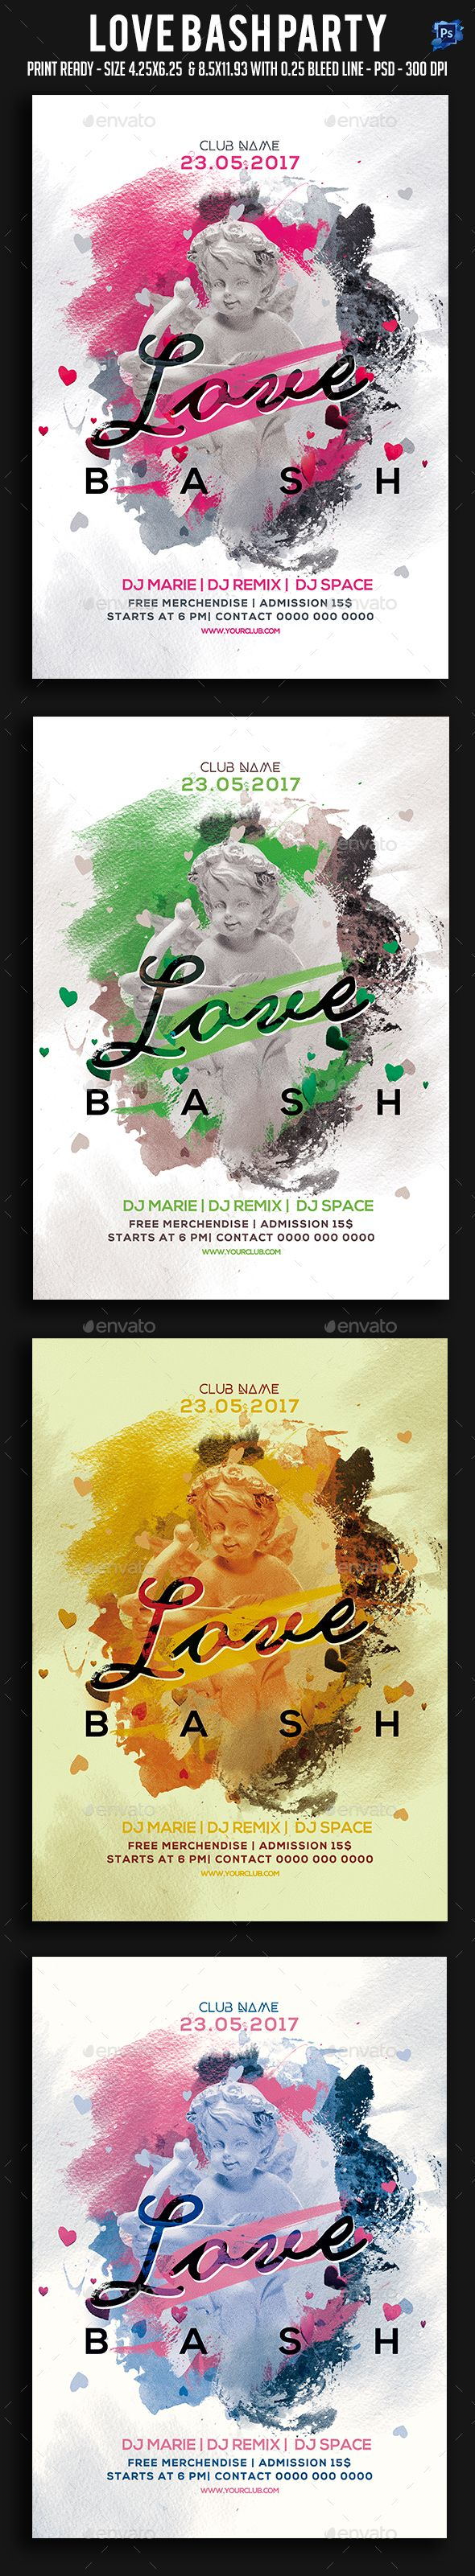 Love Bash Party Flyer Template PSD